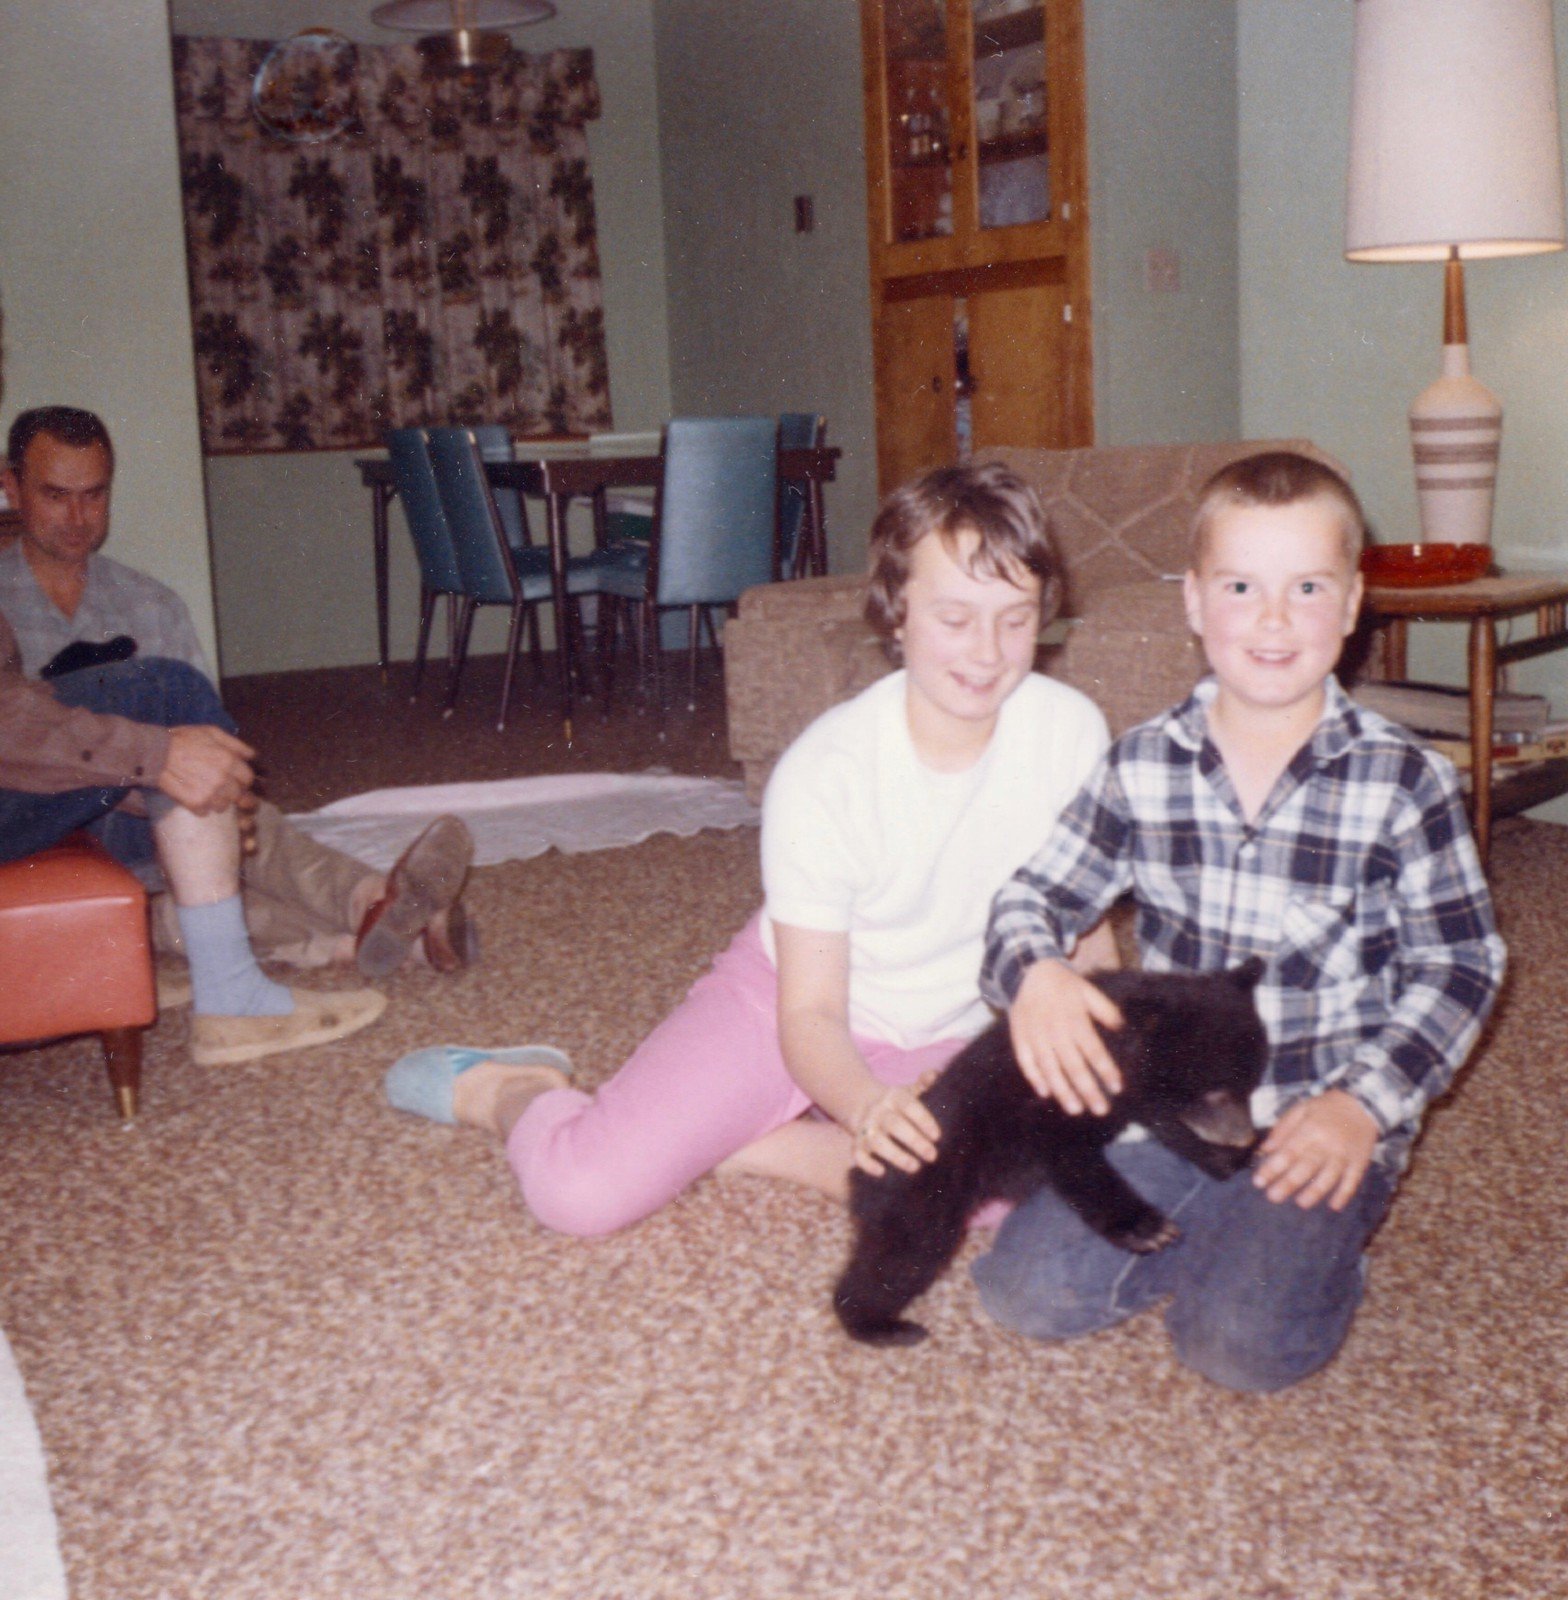 My brother and sister with a bear cub in our home, 1965.